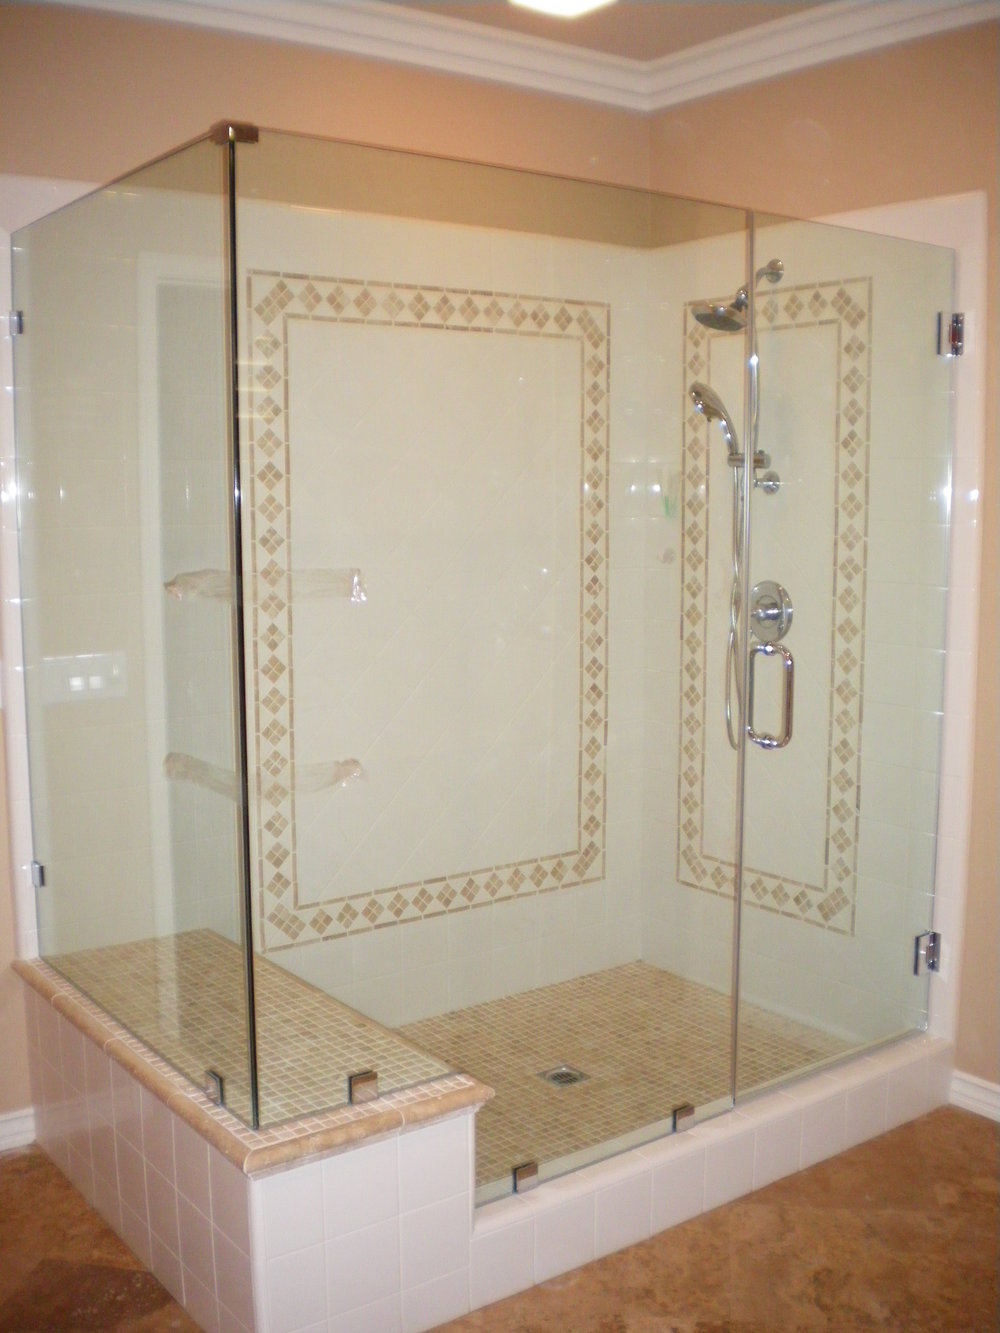 Shower-Doors-Residential-Photos-7.jpg